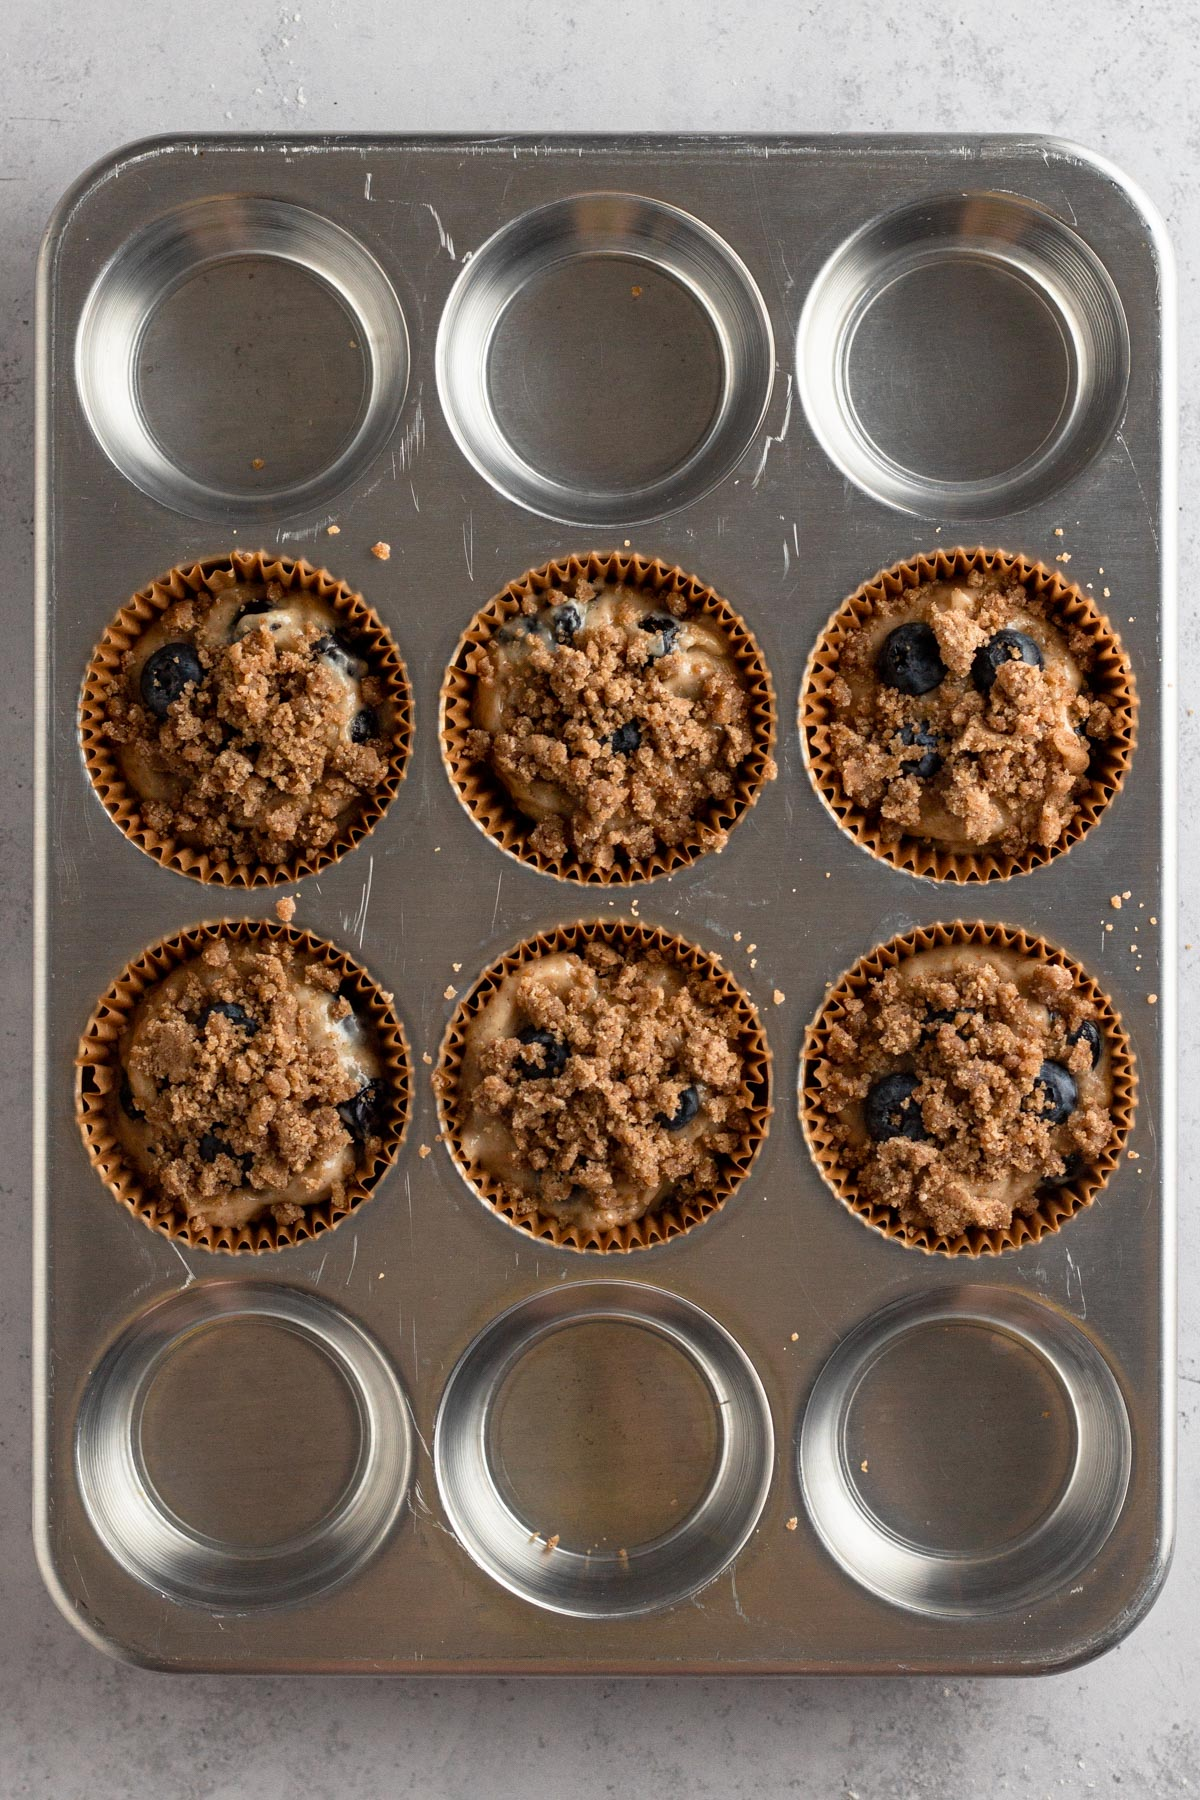 overhead view of streusel-topped muffin batter in brown paper liners in a metal muffin pan